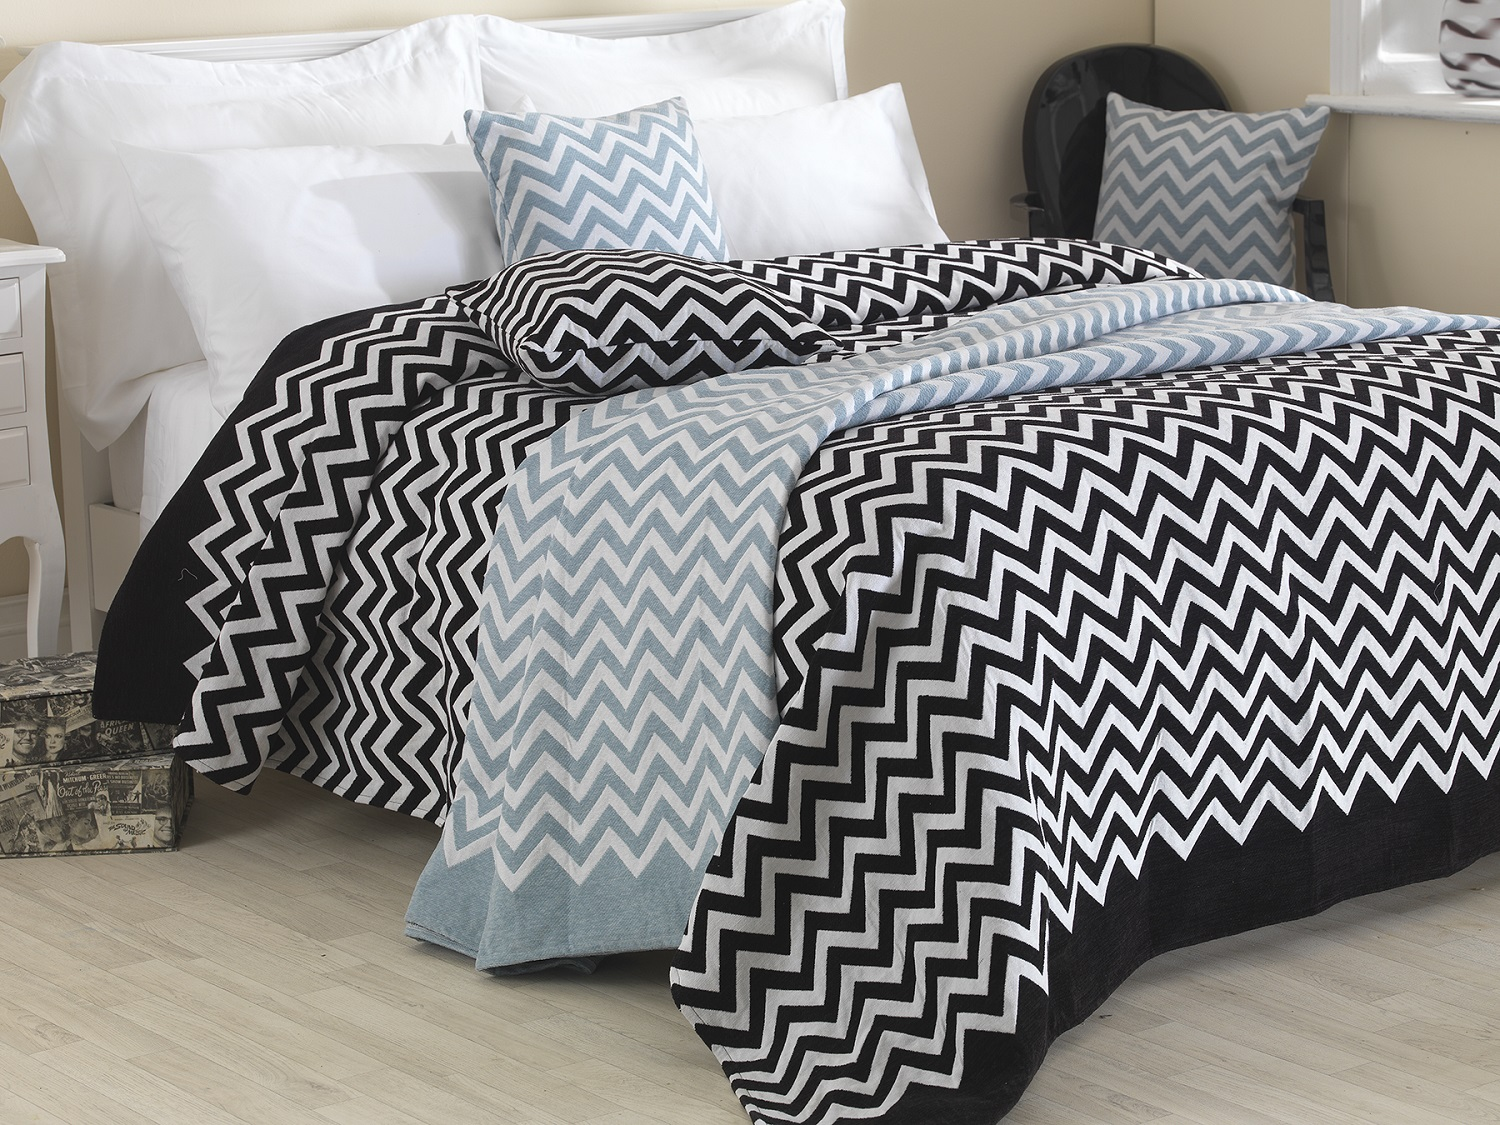 Unique Chenille Collection Zig Zag Style Bedding Bedspread